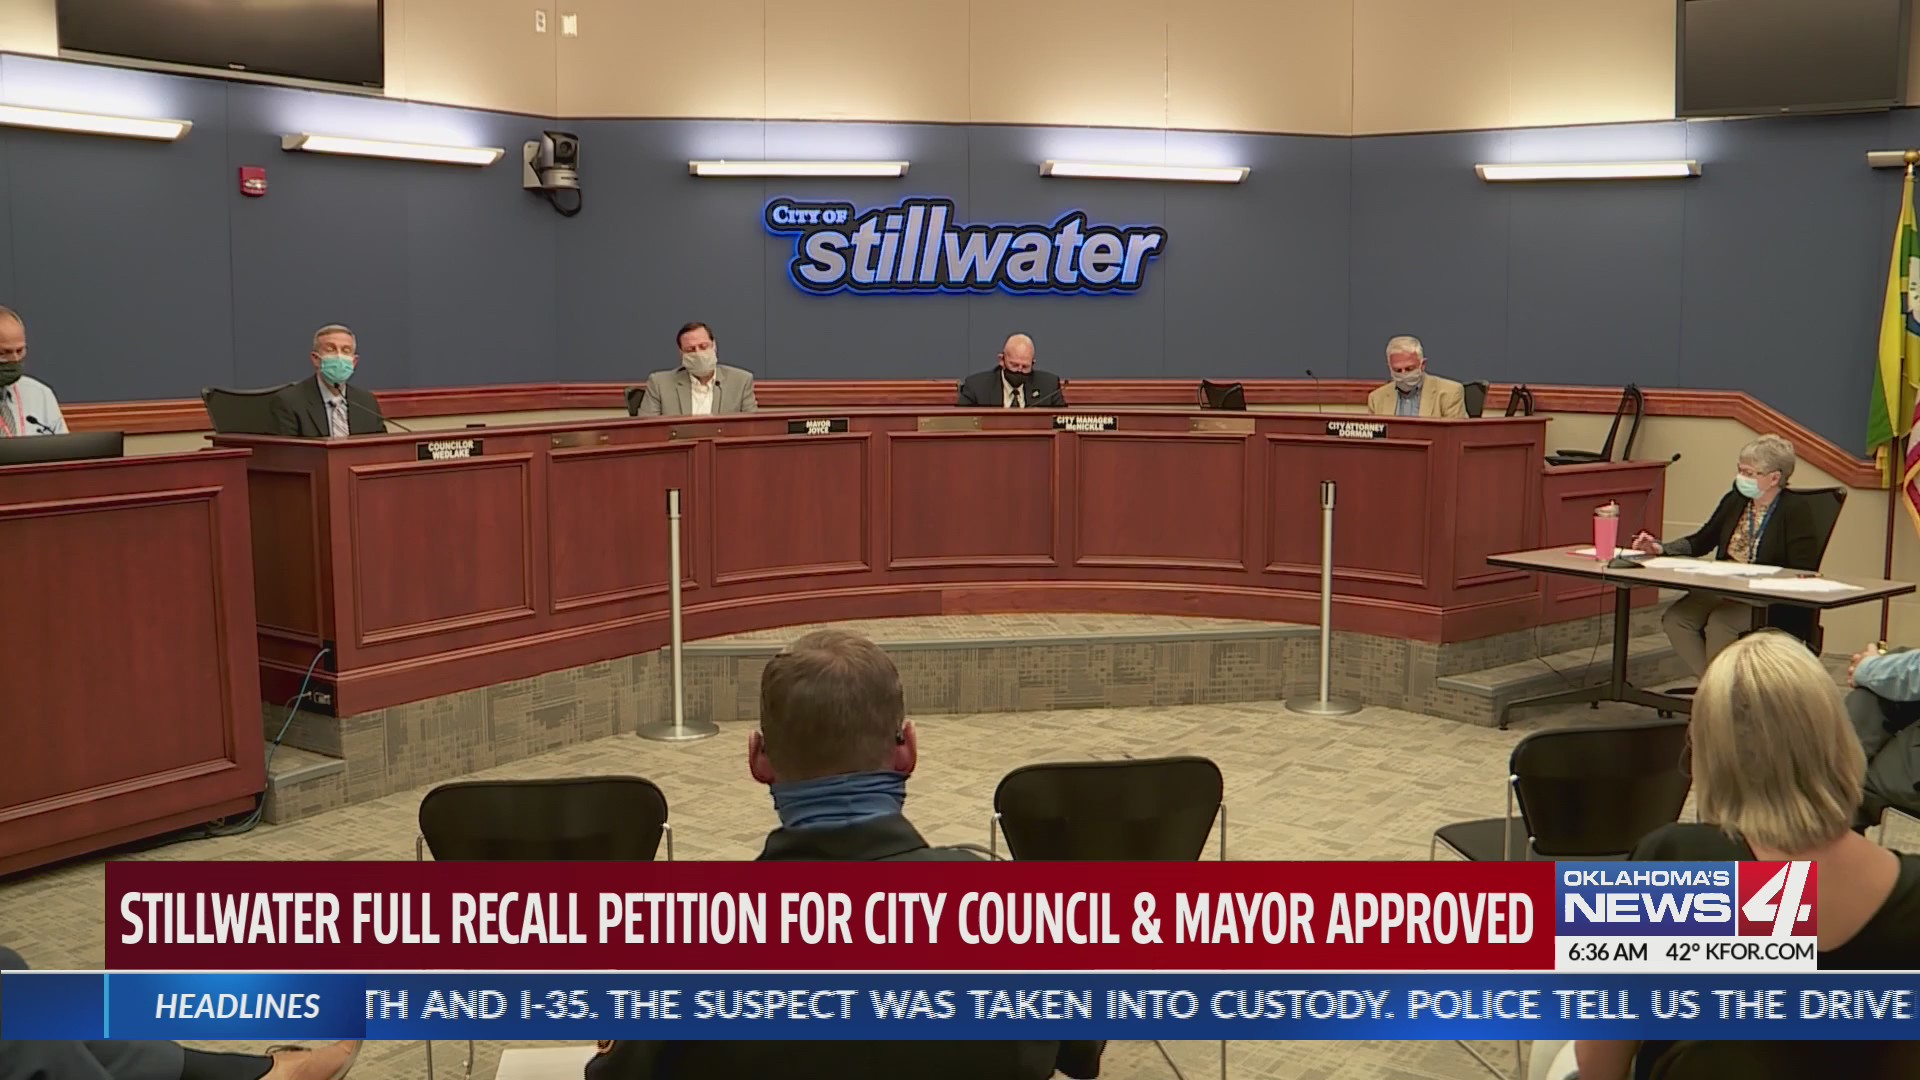 Stillwater City Council